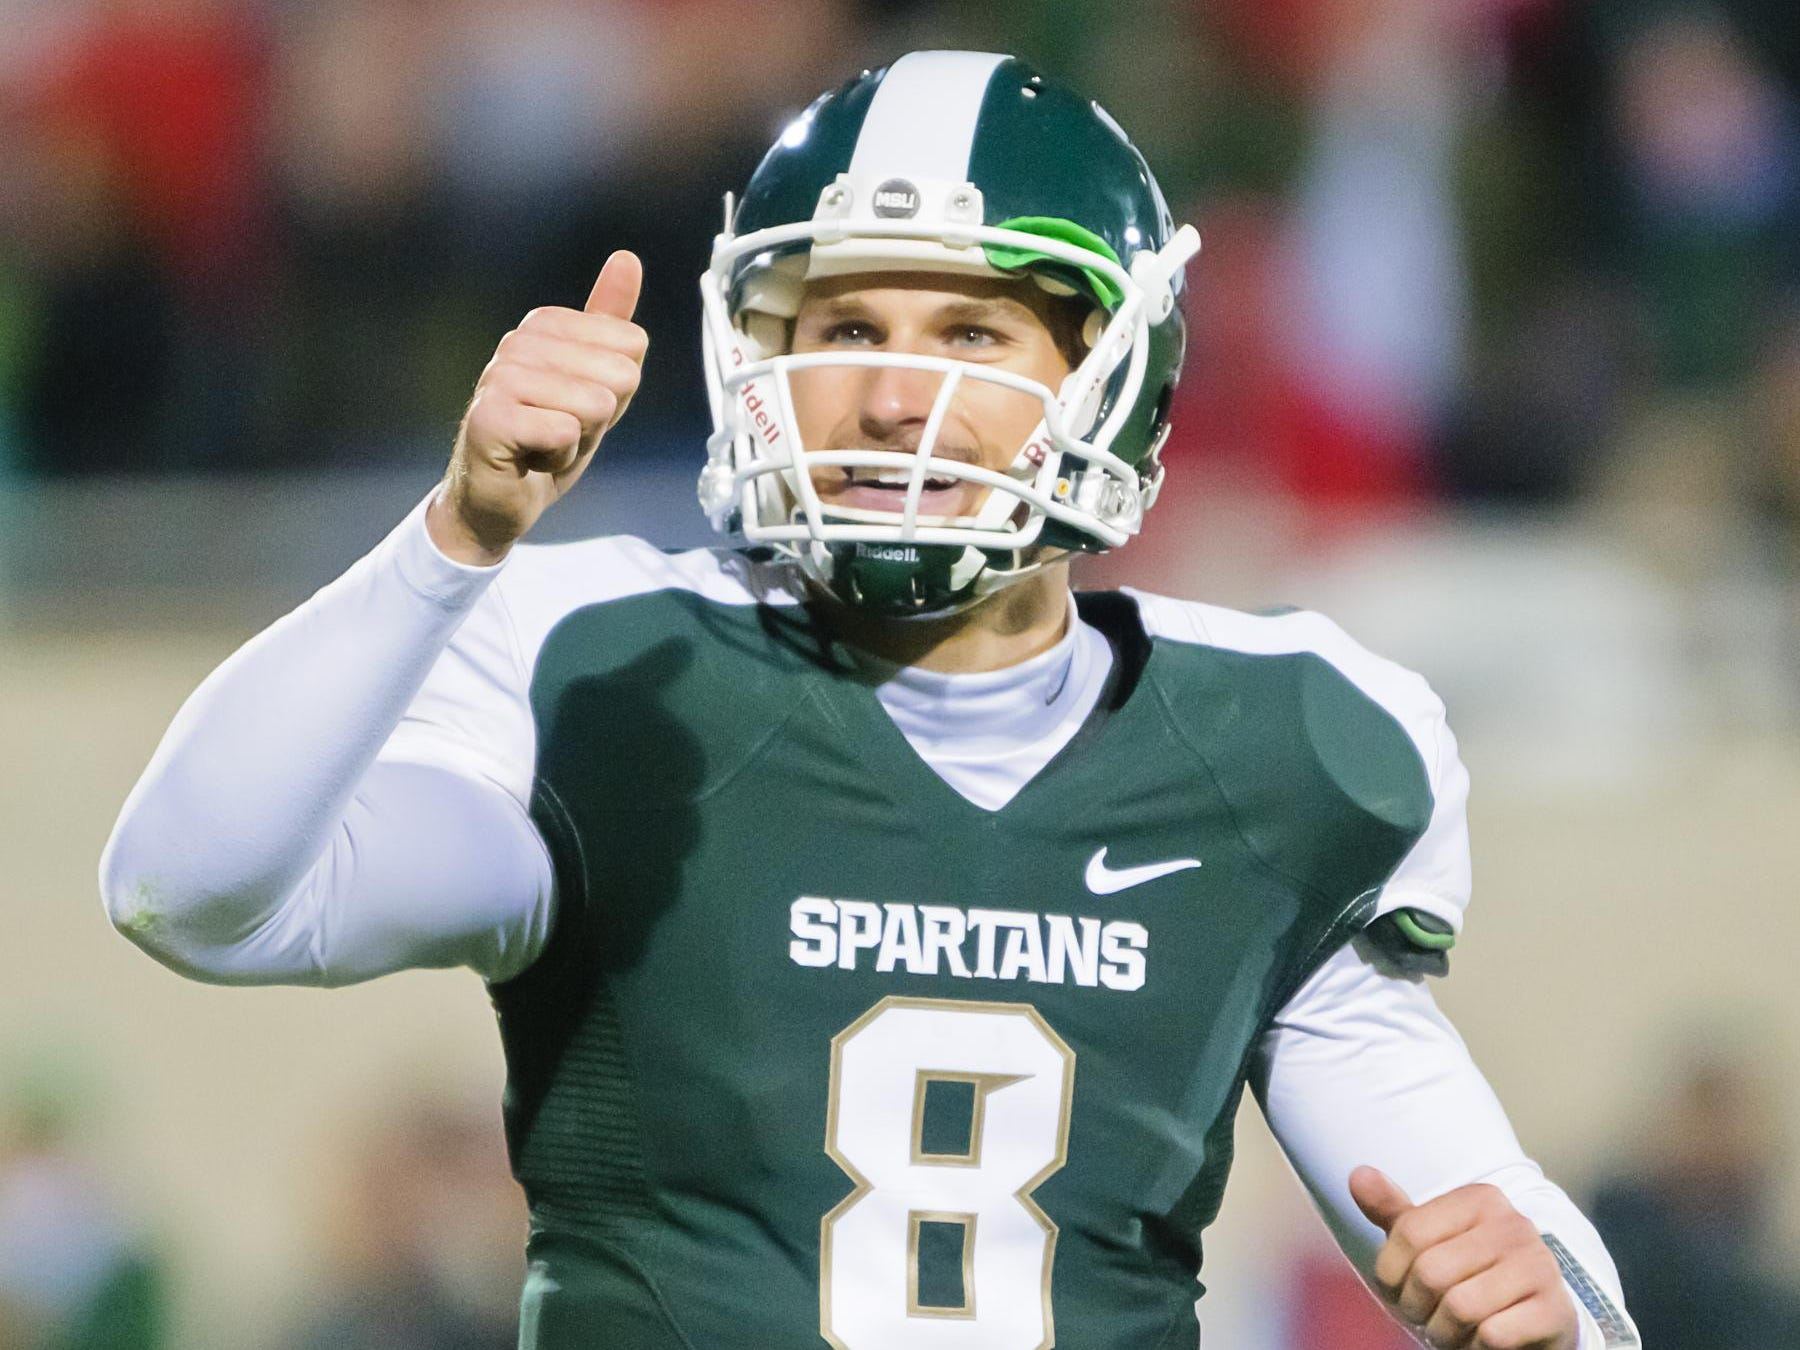 Former MSU quarterback Kirk Cousins will be keynote speaker a June 7 ceremony.